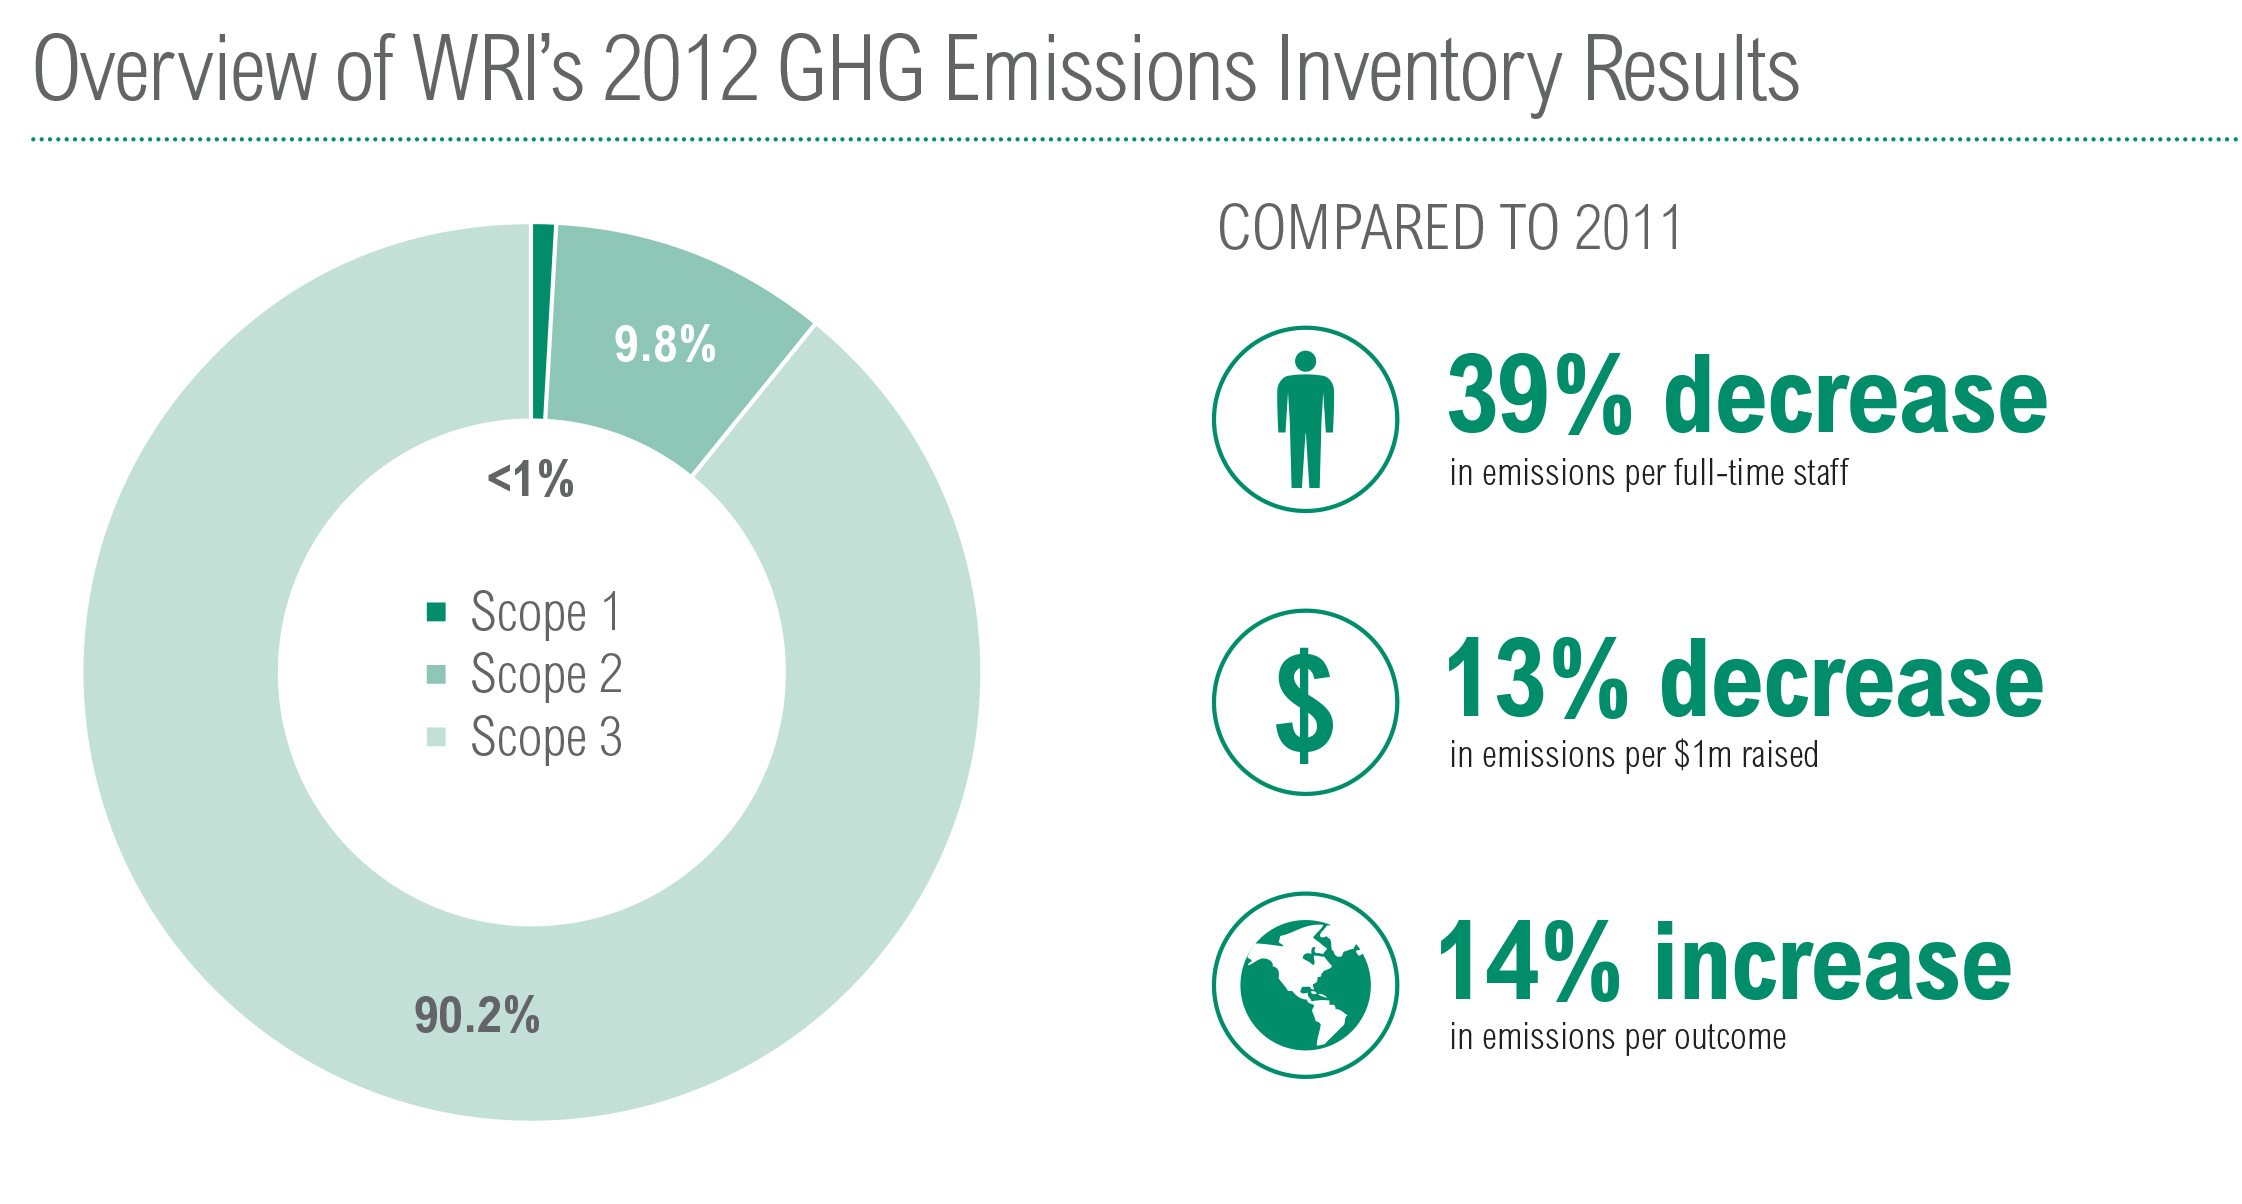 <p>Figure 1: Overview of WRI\'s 2012 GHG Inventory</p>